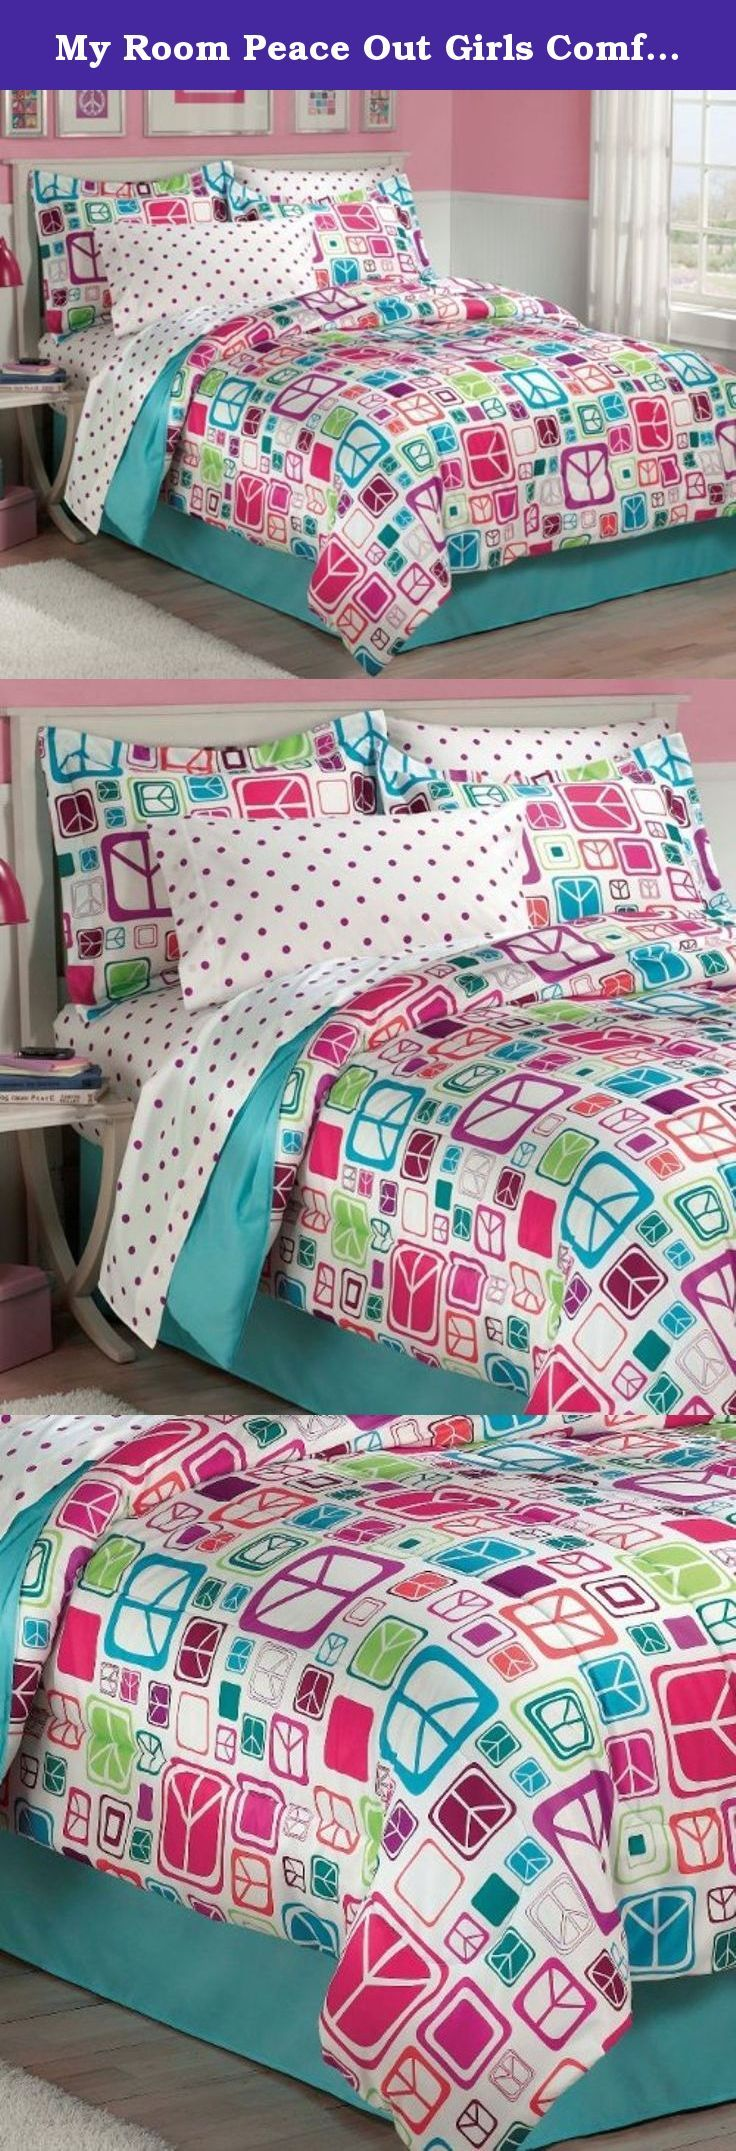 My Room Peace Out Girls Comforter Set With Bedskirt, Teal, Twin. Retro pop culture meets modern styling and sophisticated colorations in this iconic Peace Out complete bedroom ensemble! The face of the comforter and standard flanged pillow shams spotlights a dense, allover design of different sizes and shapes of peace signs in chic hues of turquoise, magenta, brick red, eggplant, apple green, coral and petal pink on a white ground. The comforter reverses to a solid turquoise fabric....